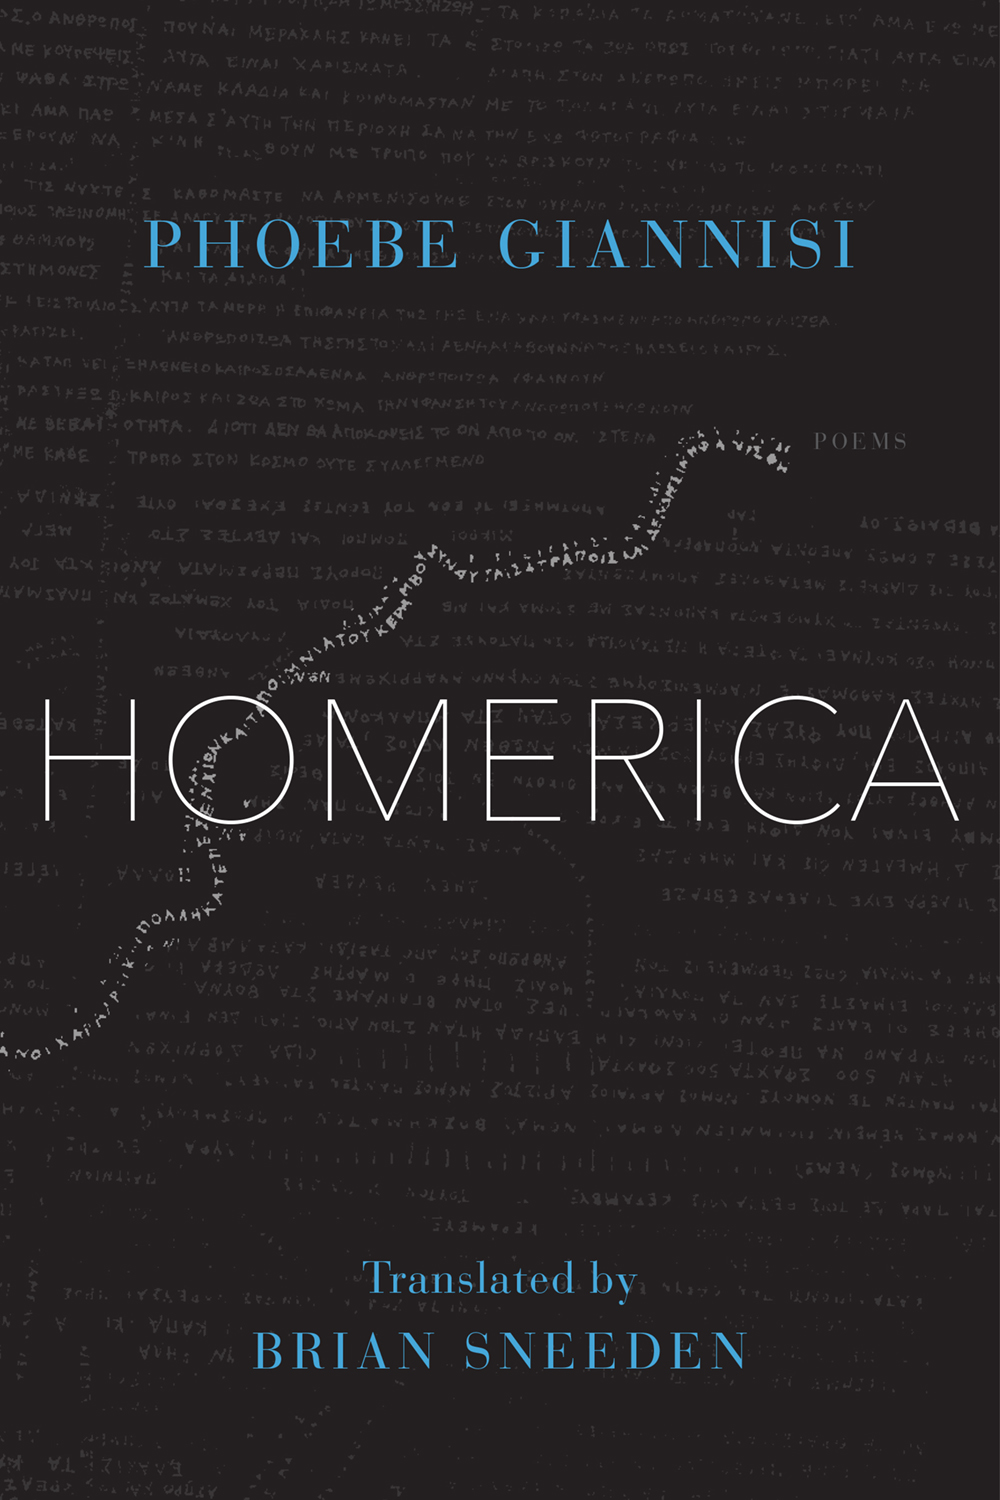 homerica | phoebe giannisi | world poetry books